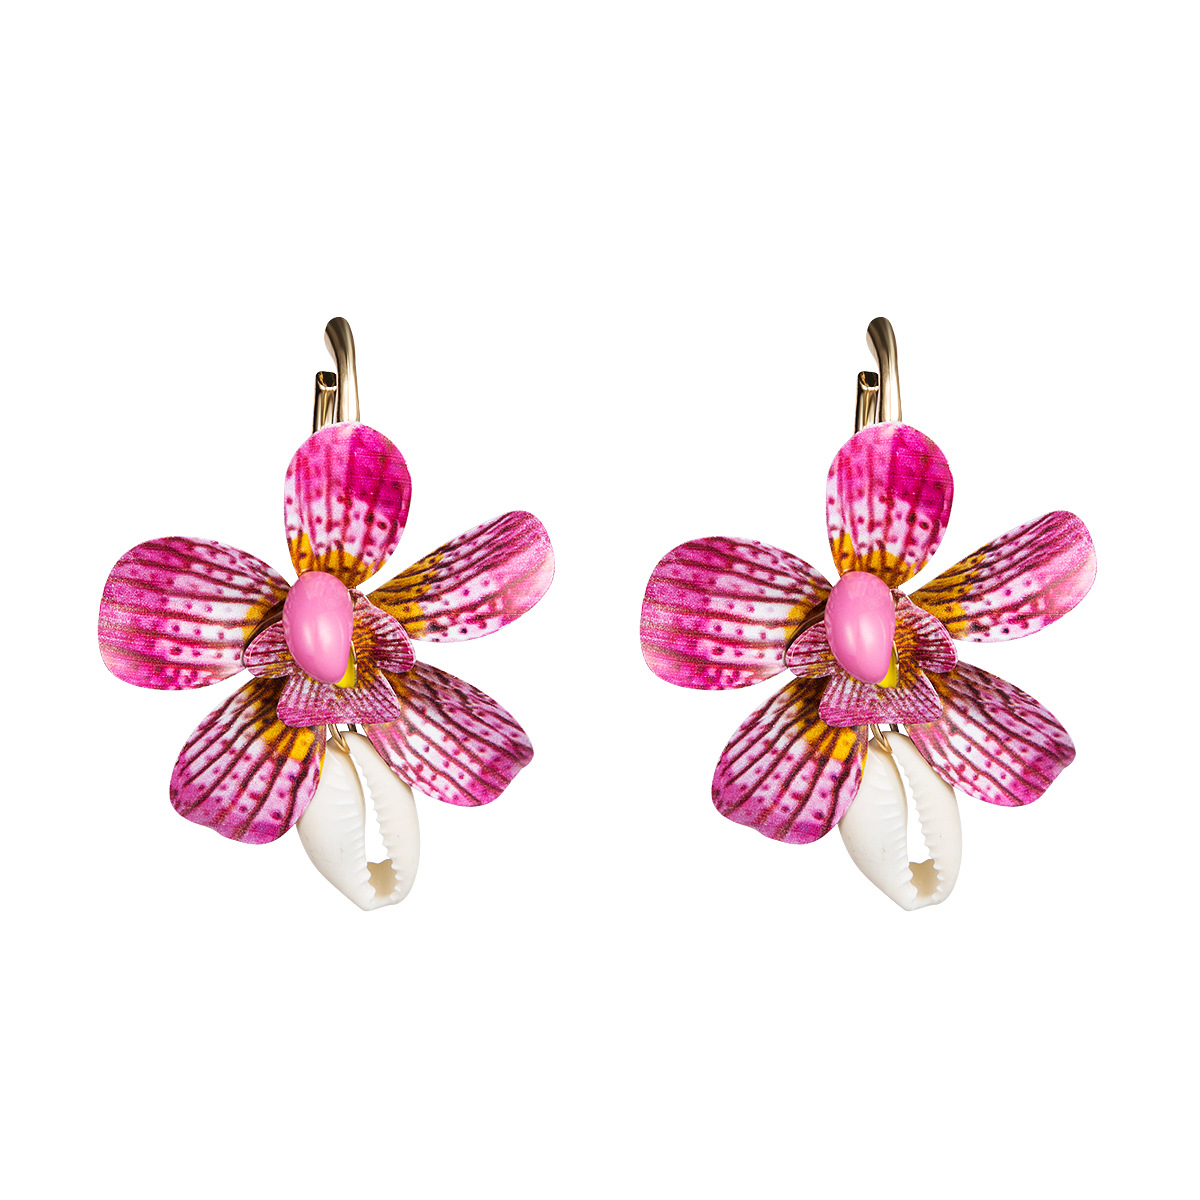 WENZHE New style beautiful hand made pink spray paint flower seashell drop earrings Featured Image